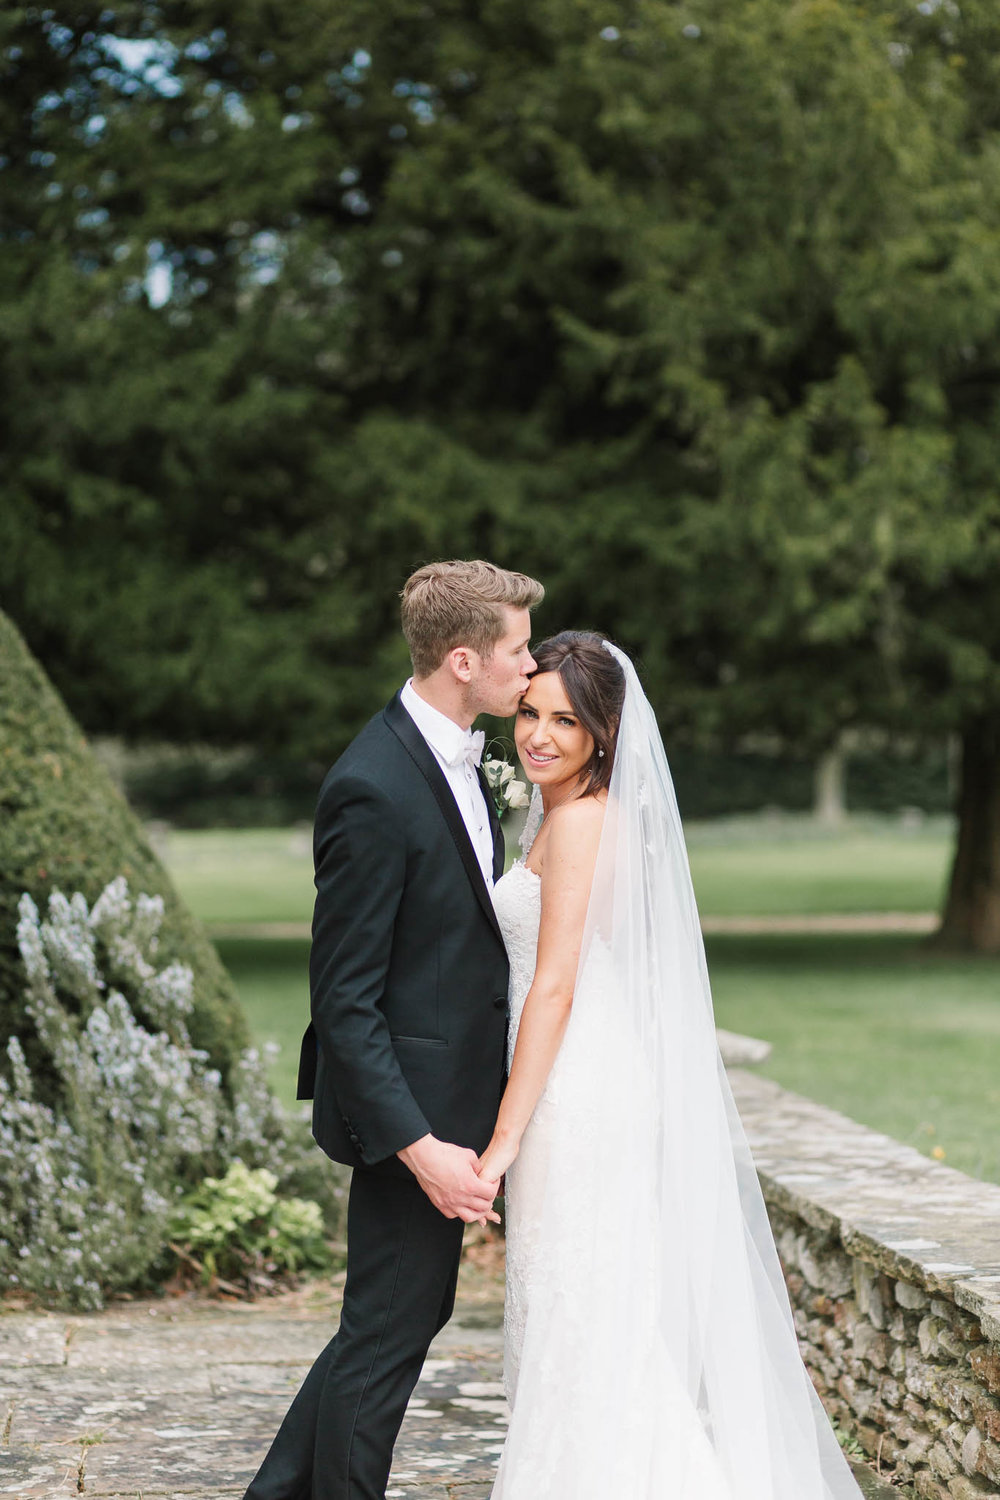 natural bride and groom photo - northbrook park